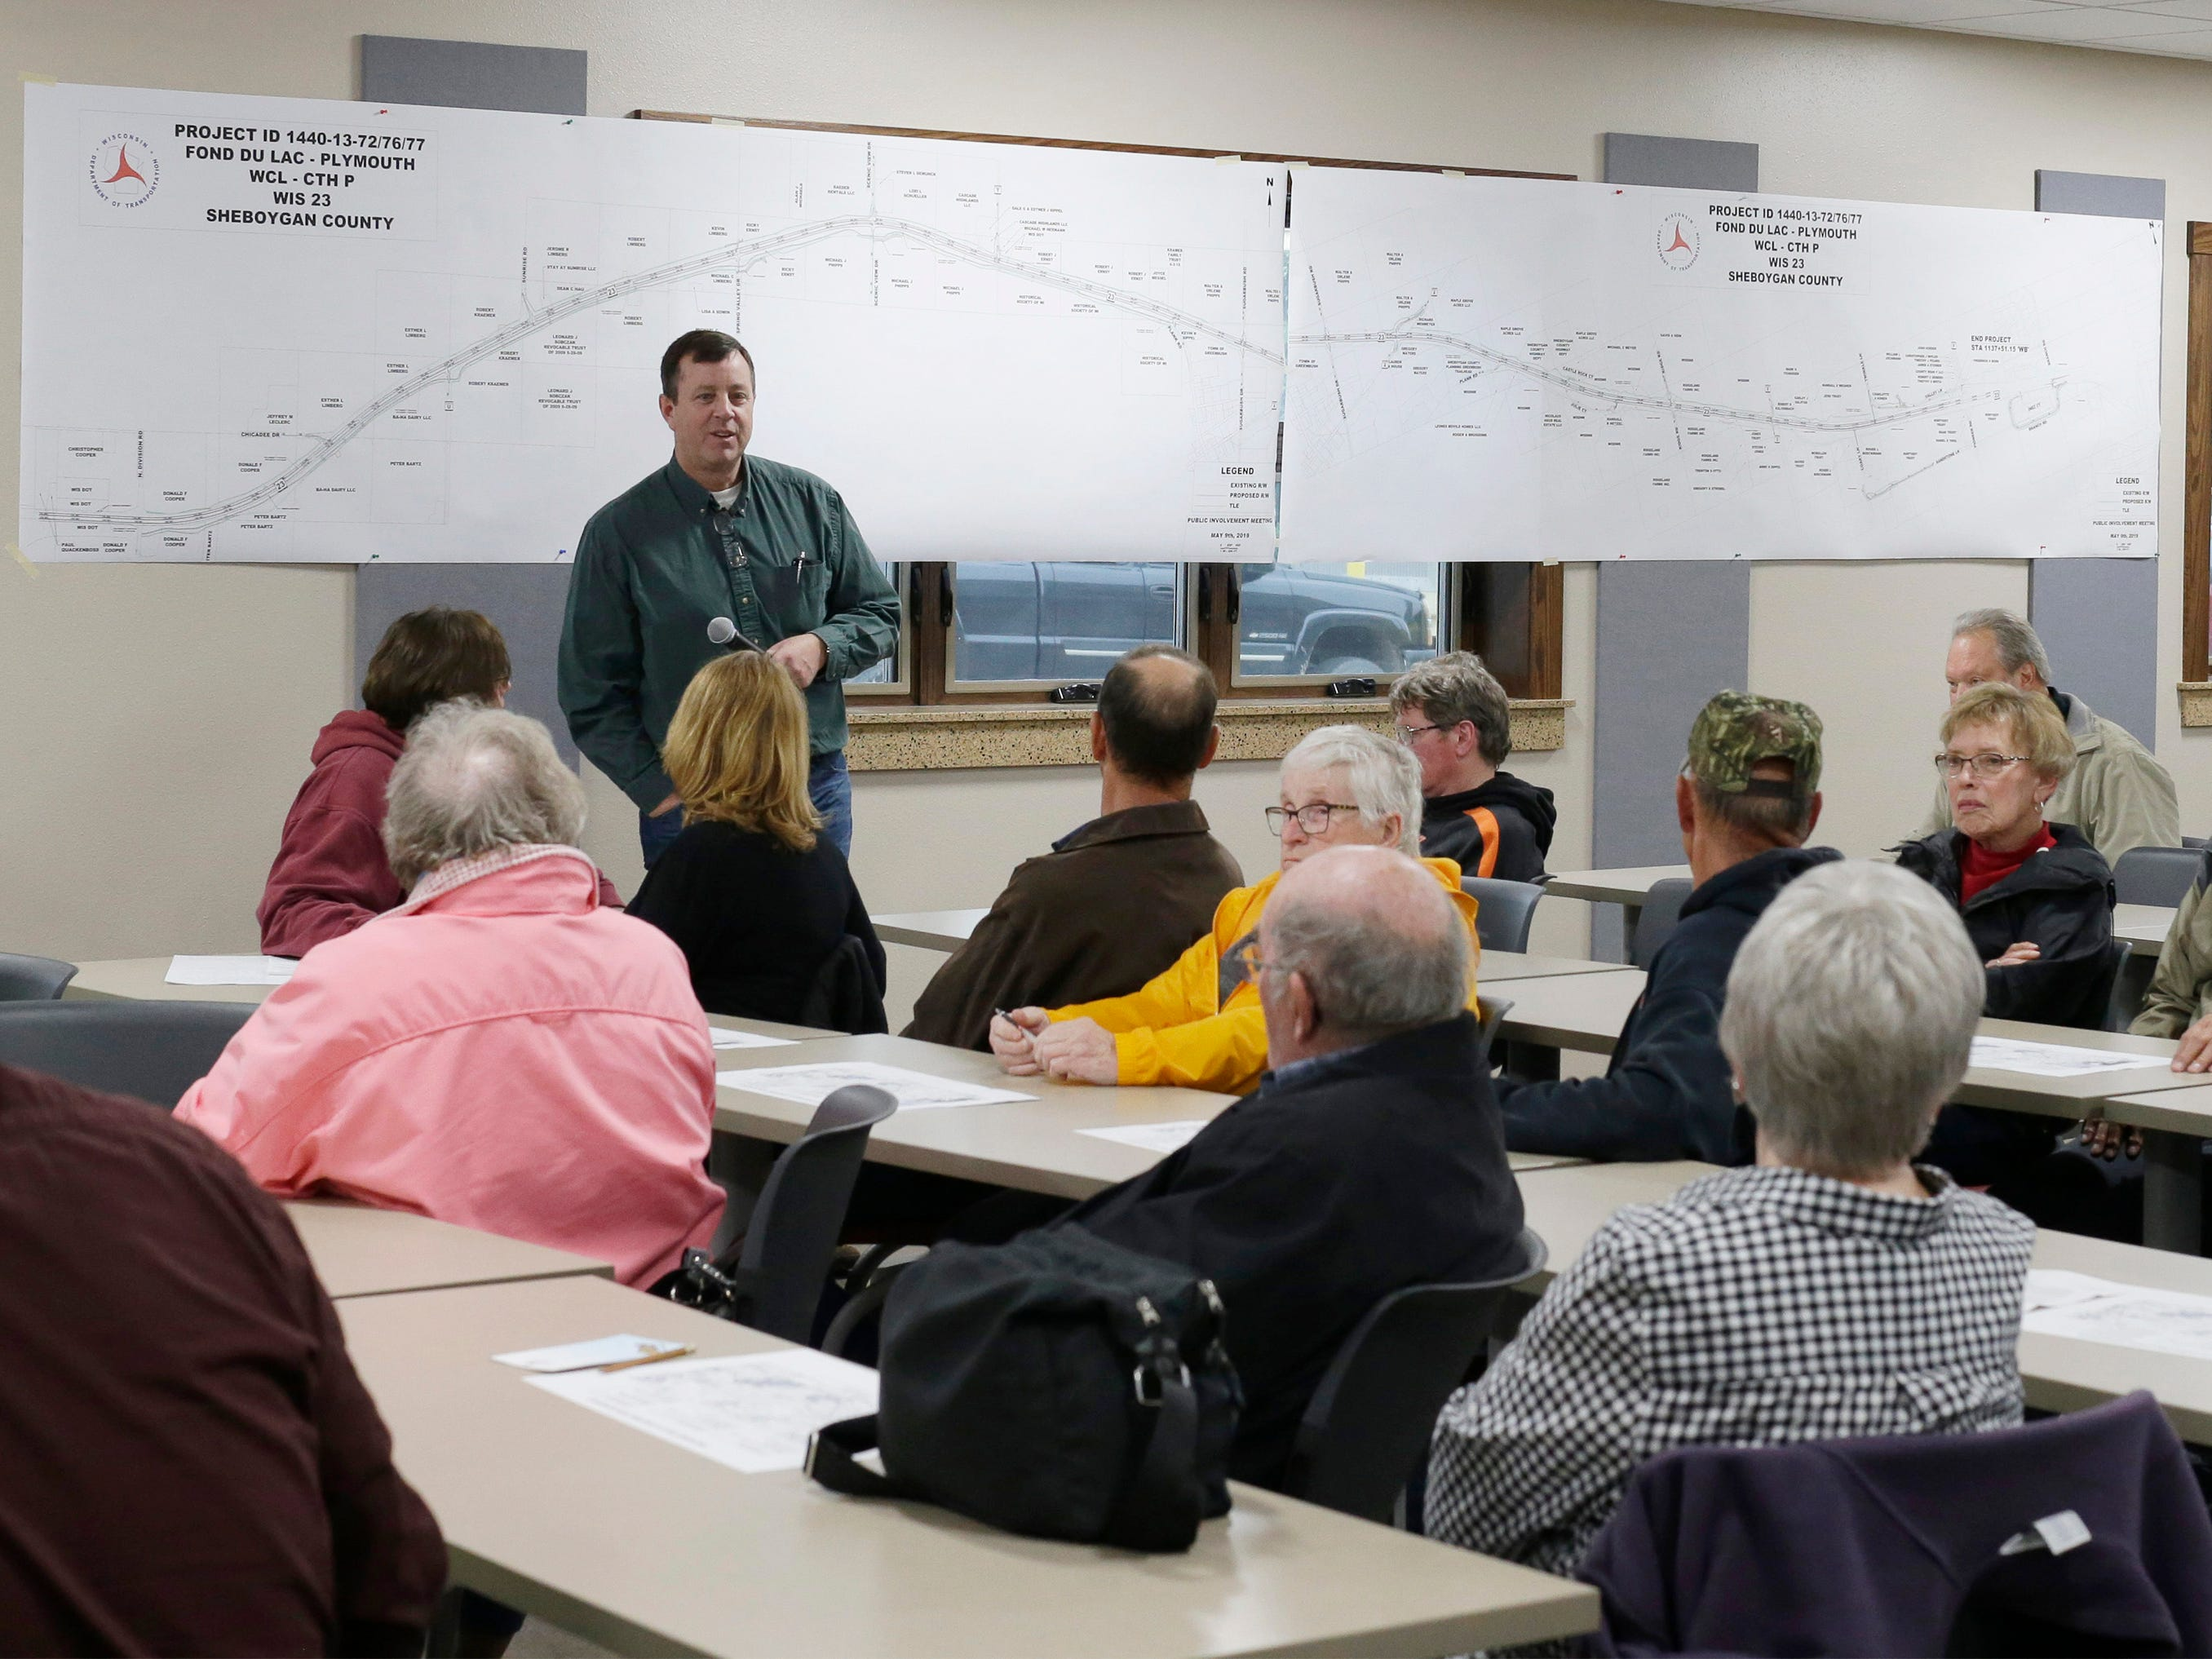 Relyco's Tom Ceske listens to a question from a person impacted by the state Highway 23 four-lane construction project at meeting at the Sheboygan County Transportation facility, Thursday, May 9, 2019, in Plymouth, Wis. Relyco is the project manager for the project.